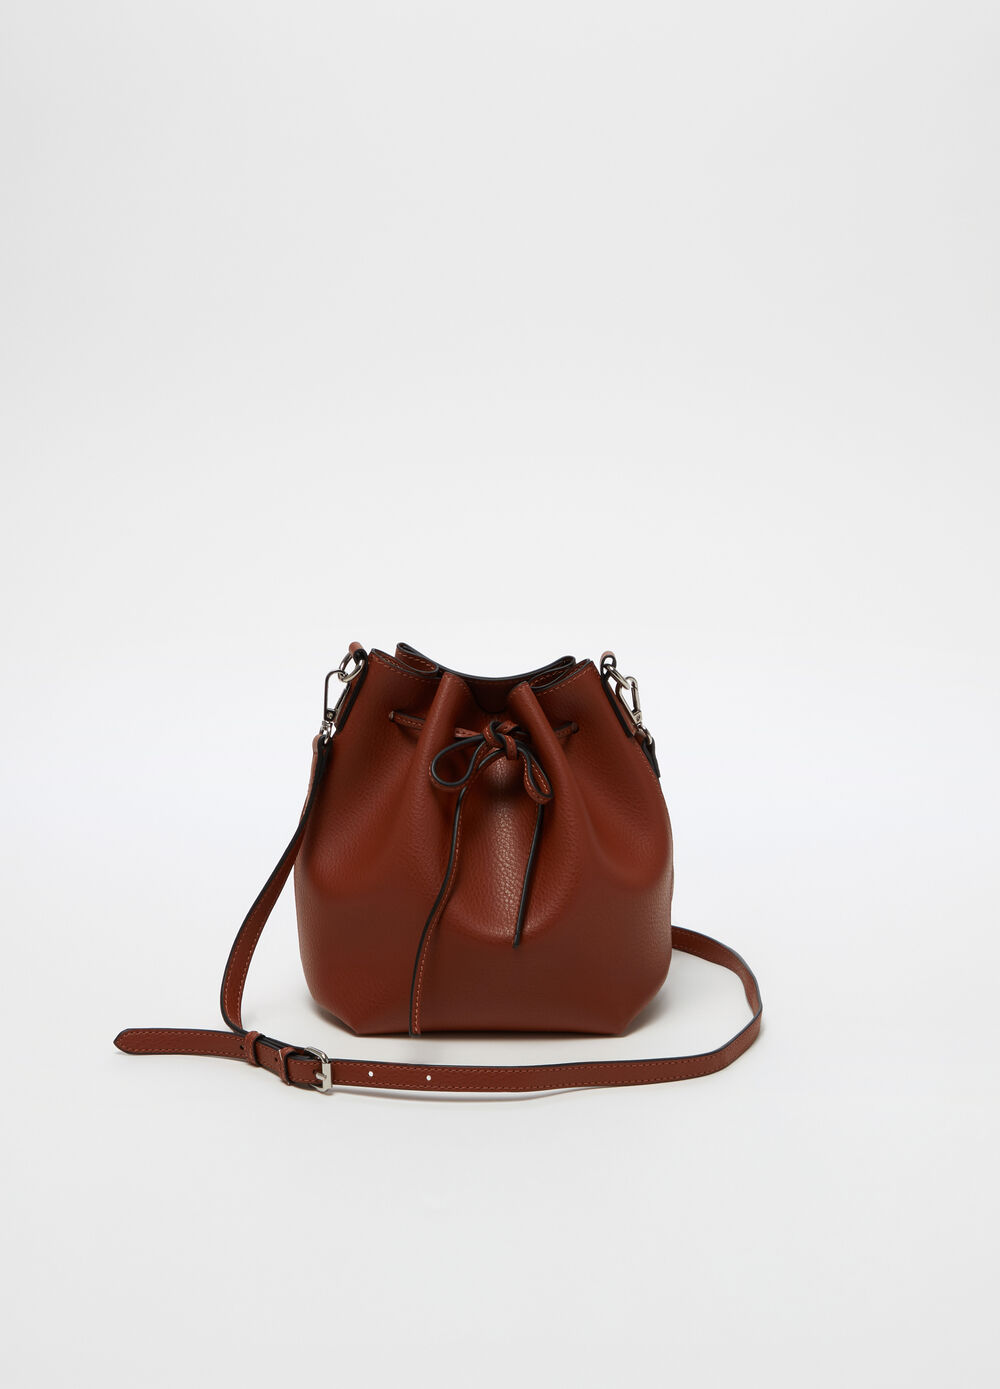 Leather-effect crossbody bucket bag